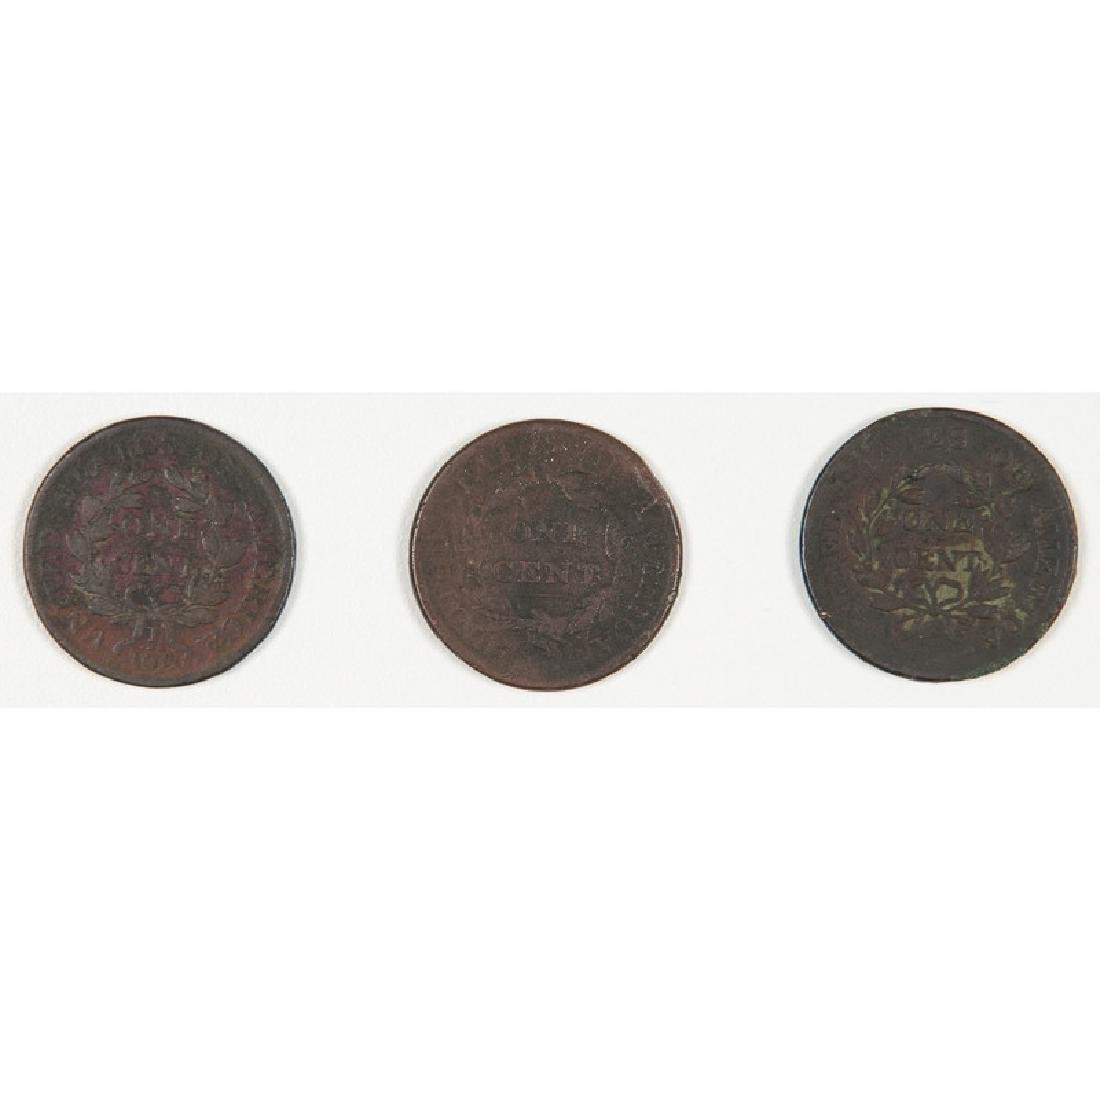 United States Large Cents 1802-1810 - 2